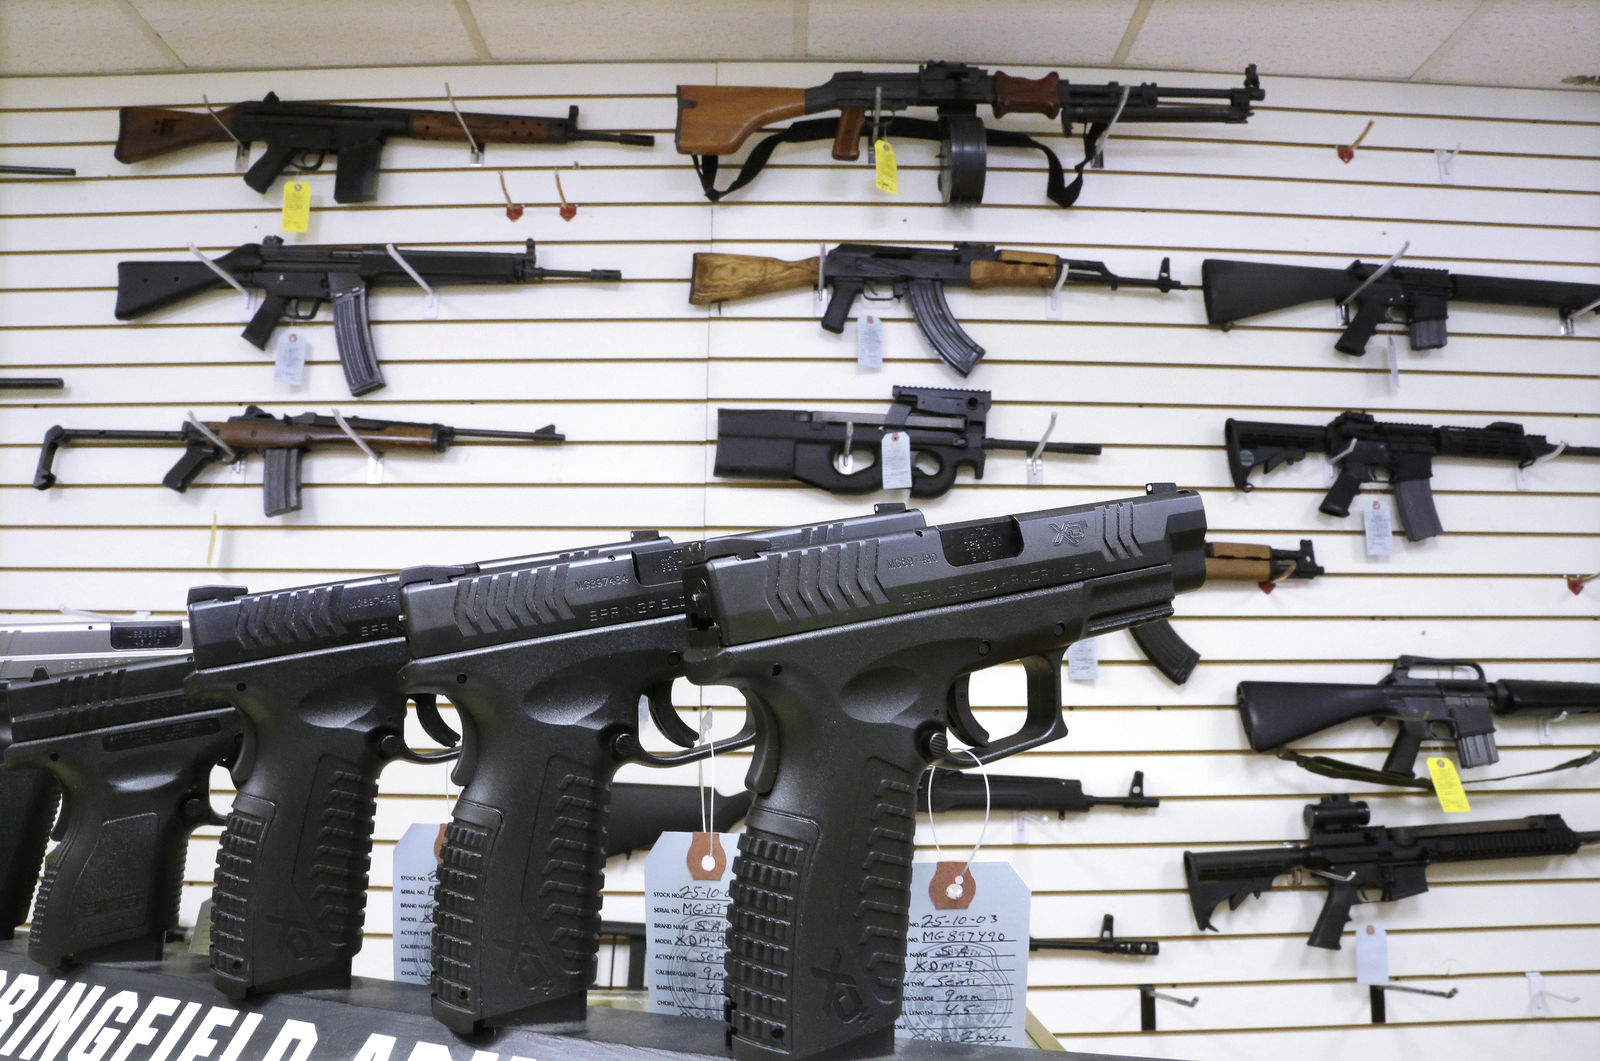 FILE--In this Jan. 16, 2013, file photo, assault weapons and hand guns are seen for sale at Capitol City Arms Supply in Springfield, Ill. (AP Photo/Seth Perlman, file)